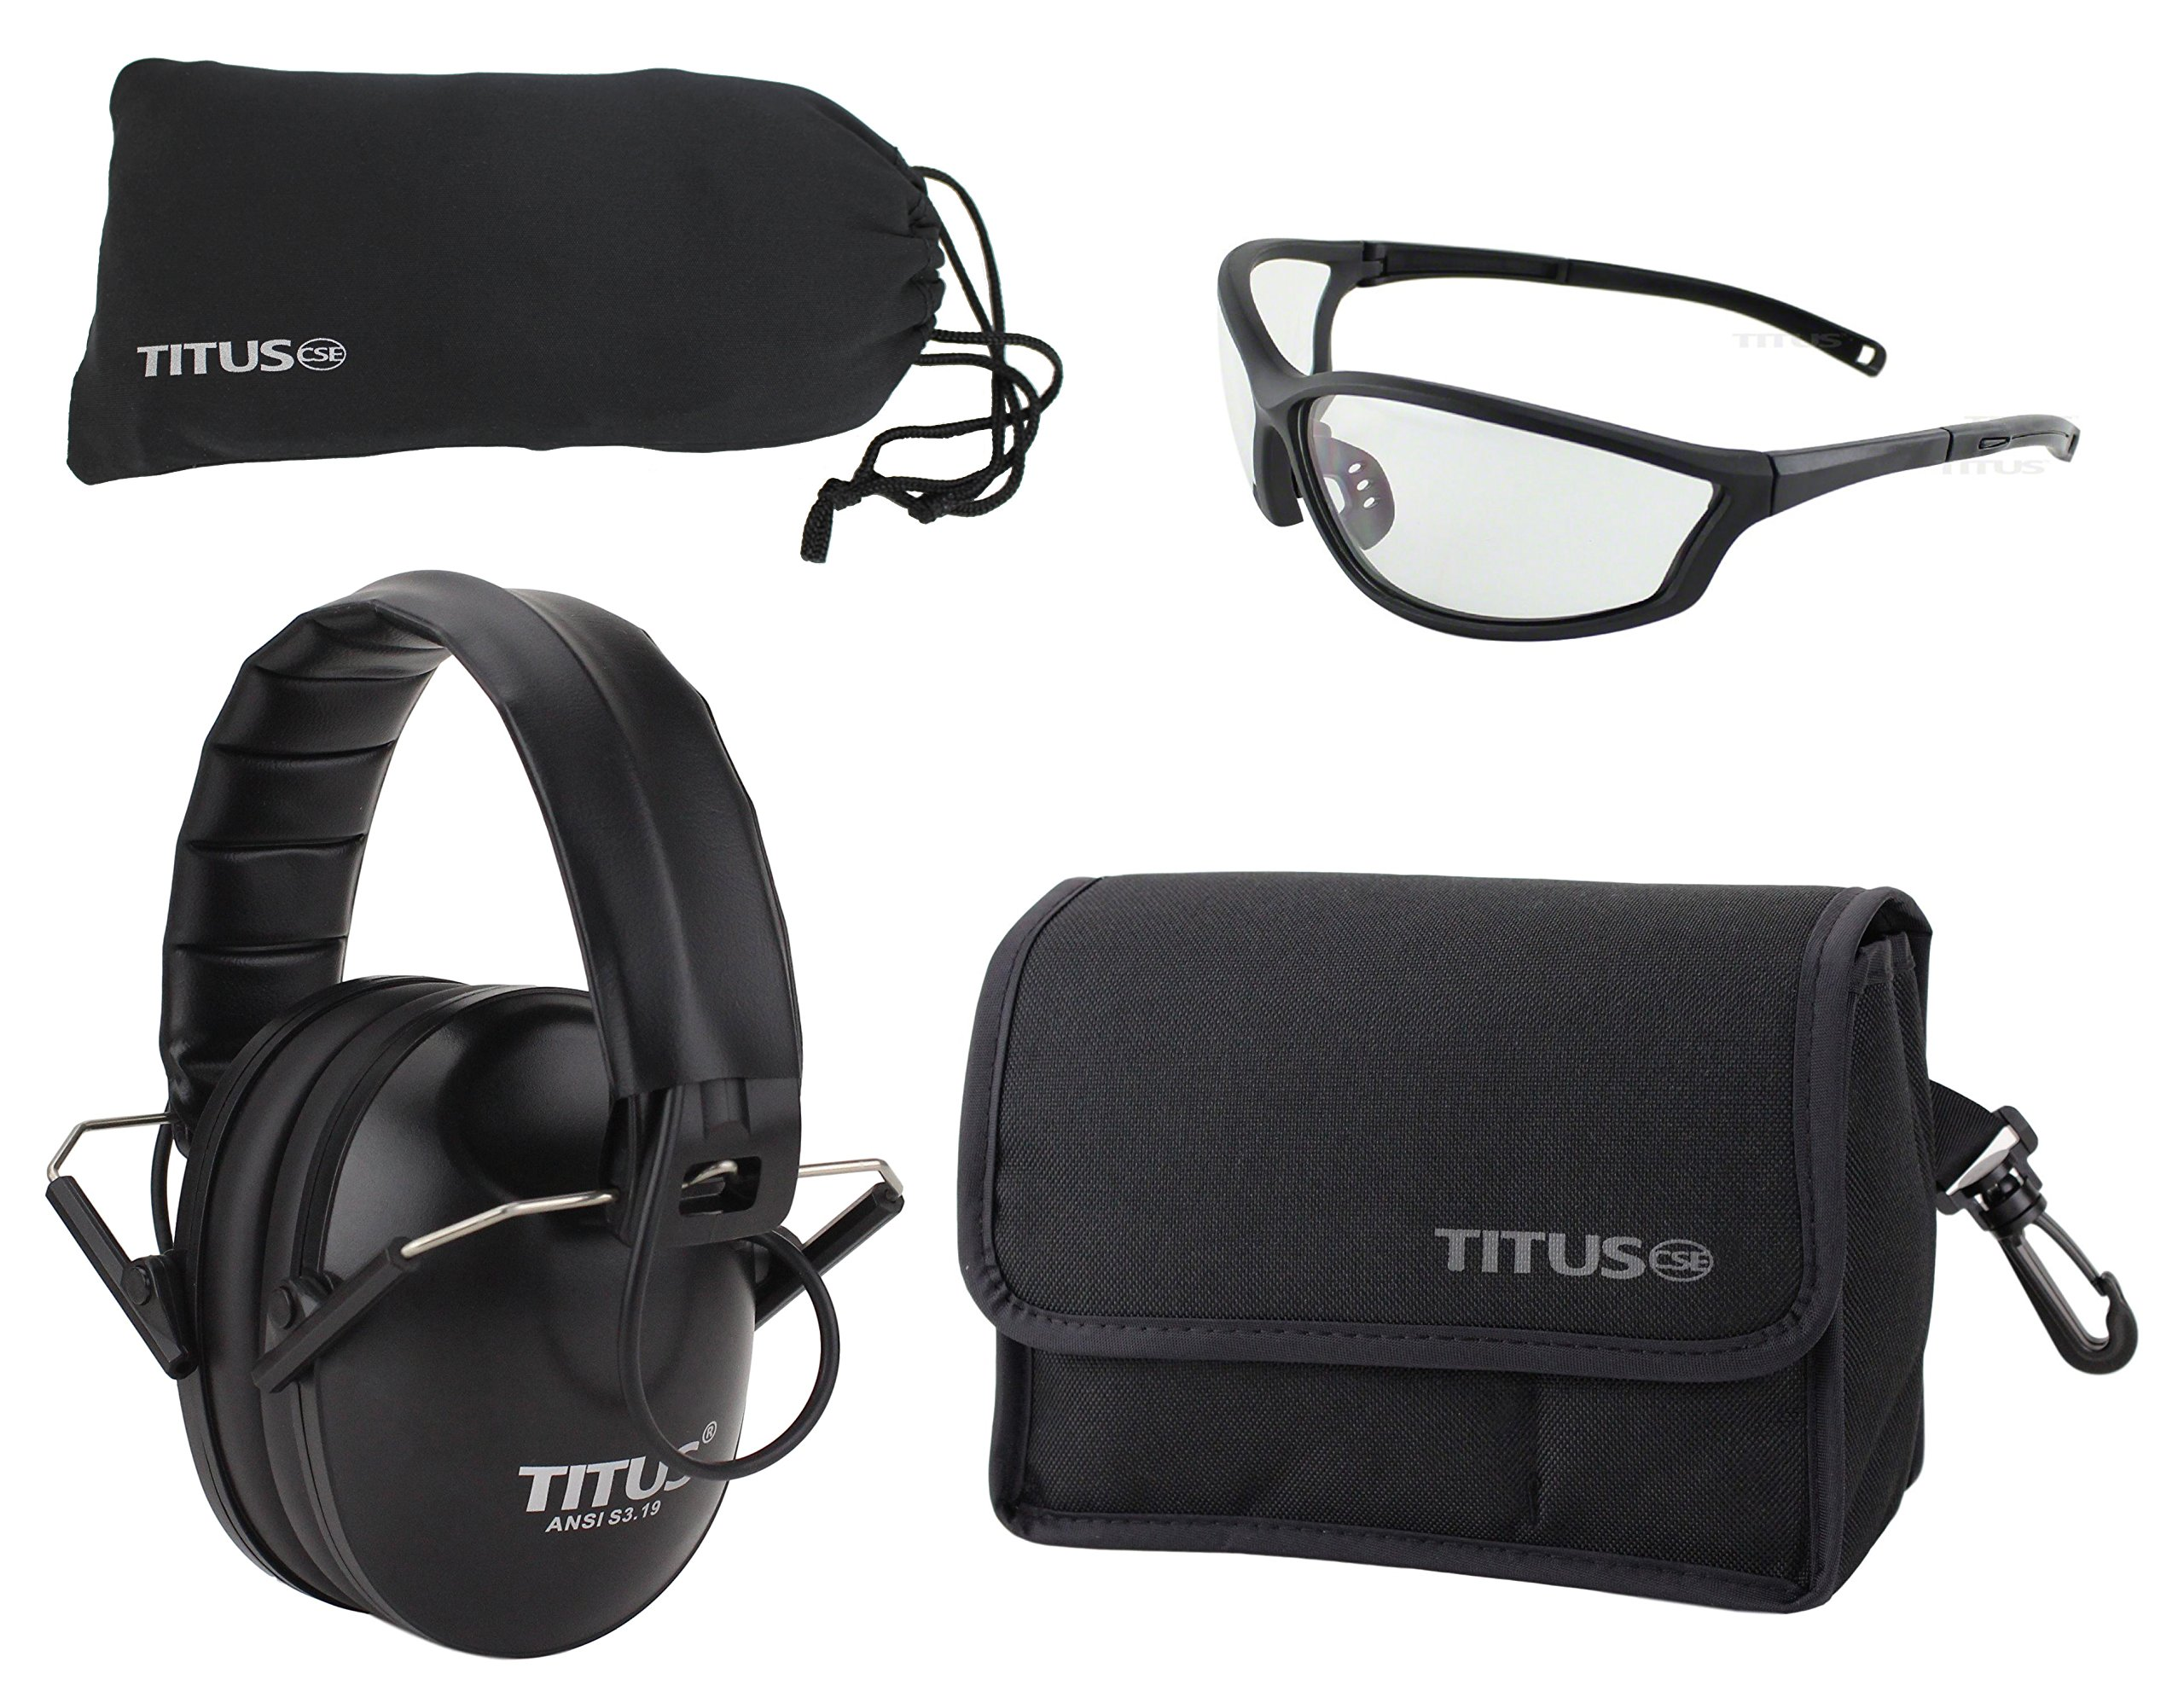 Titus TOP Slim-Line Safety Glasses and Earmuff Combos (Black - Electronic, G26 Clear w/Competition Frame)